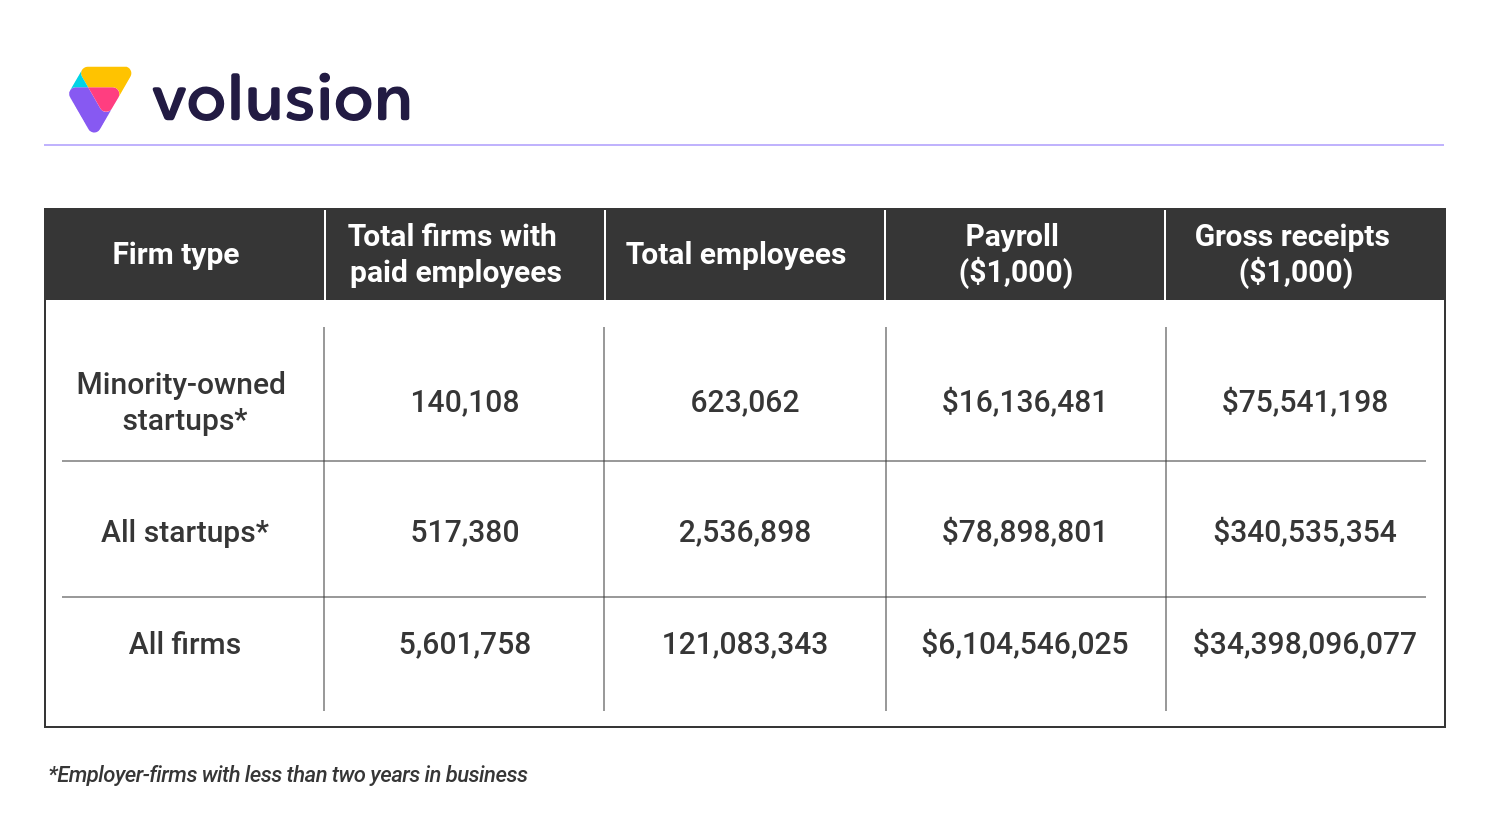 Data table showing the number of minority owned startups, as well as total employees, payroll amount and gross receipts